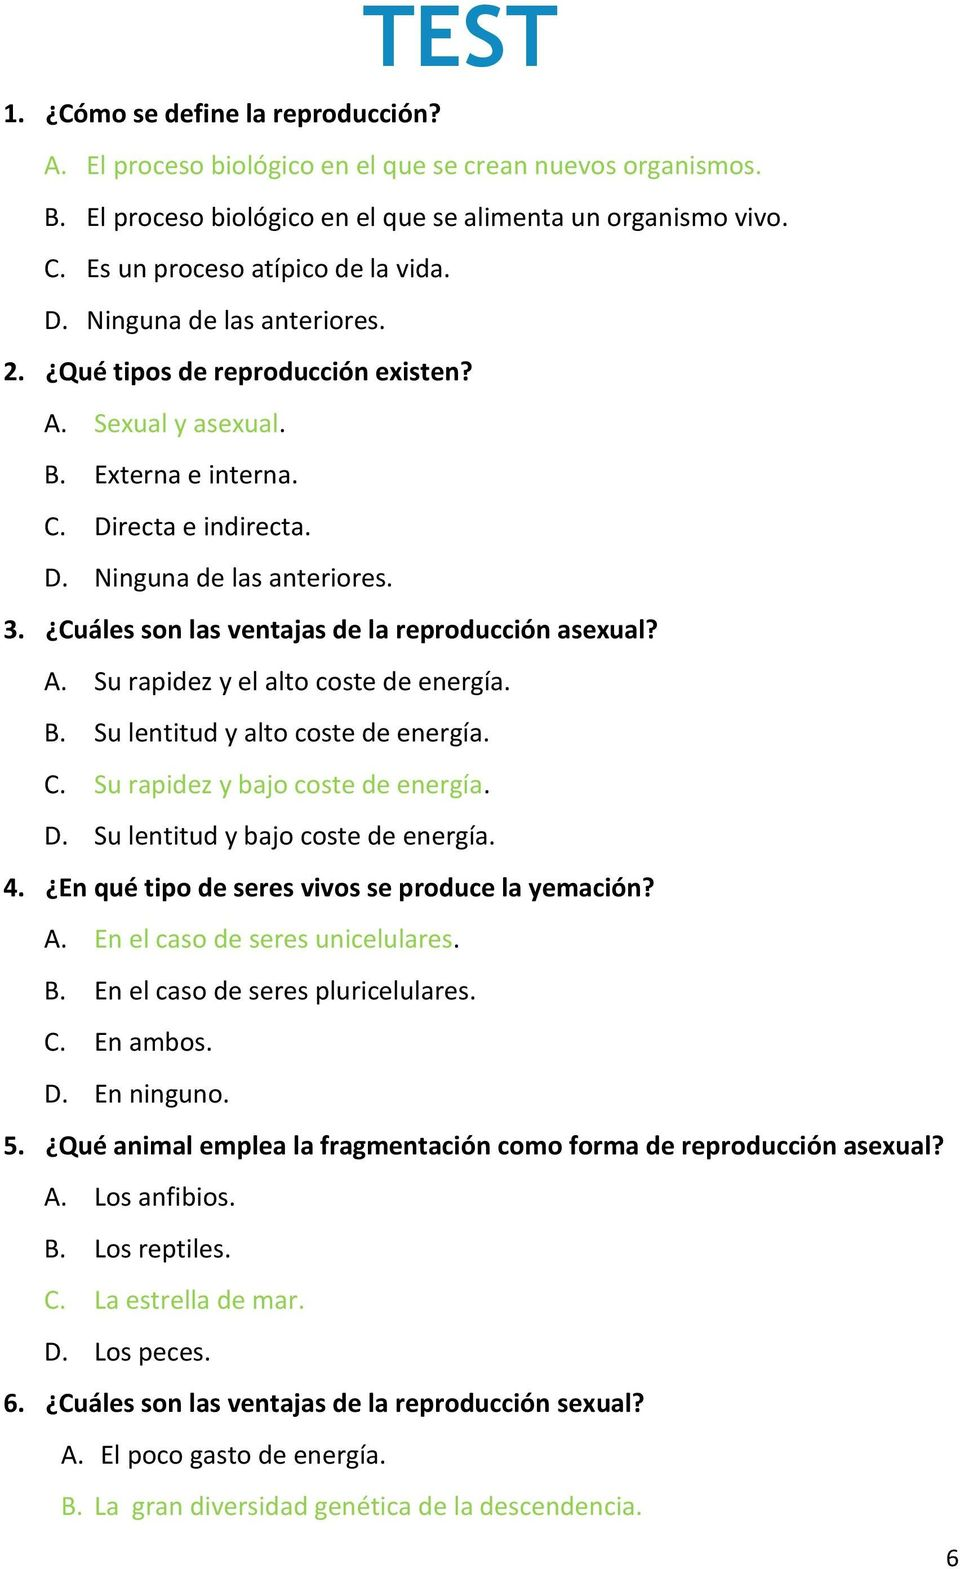 Ciclostomos reproduccion asexual de las plantas